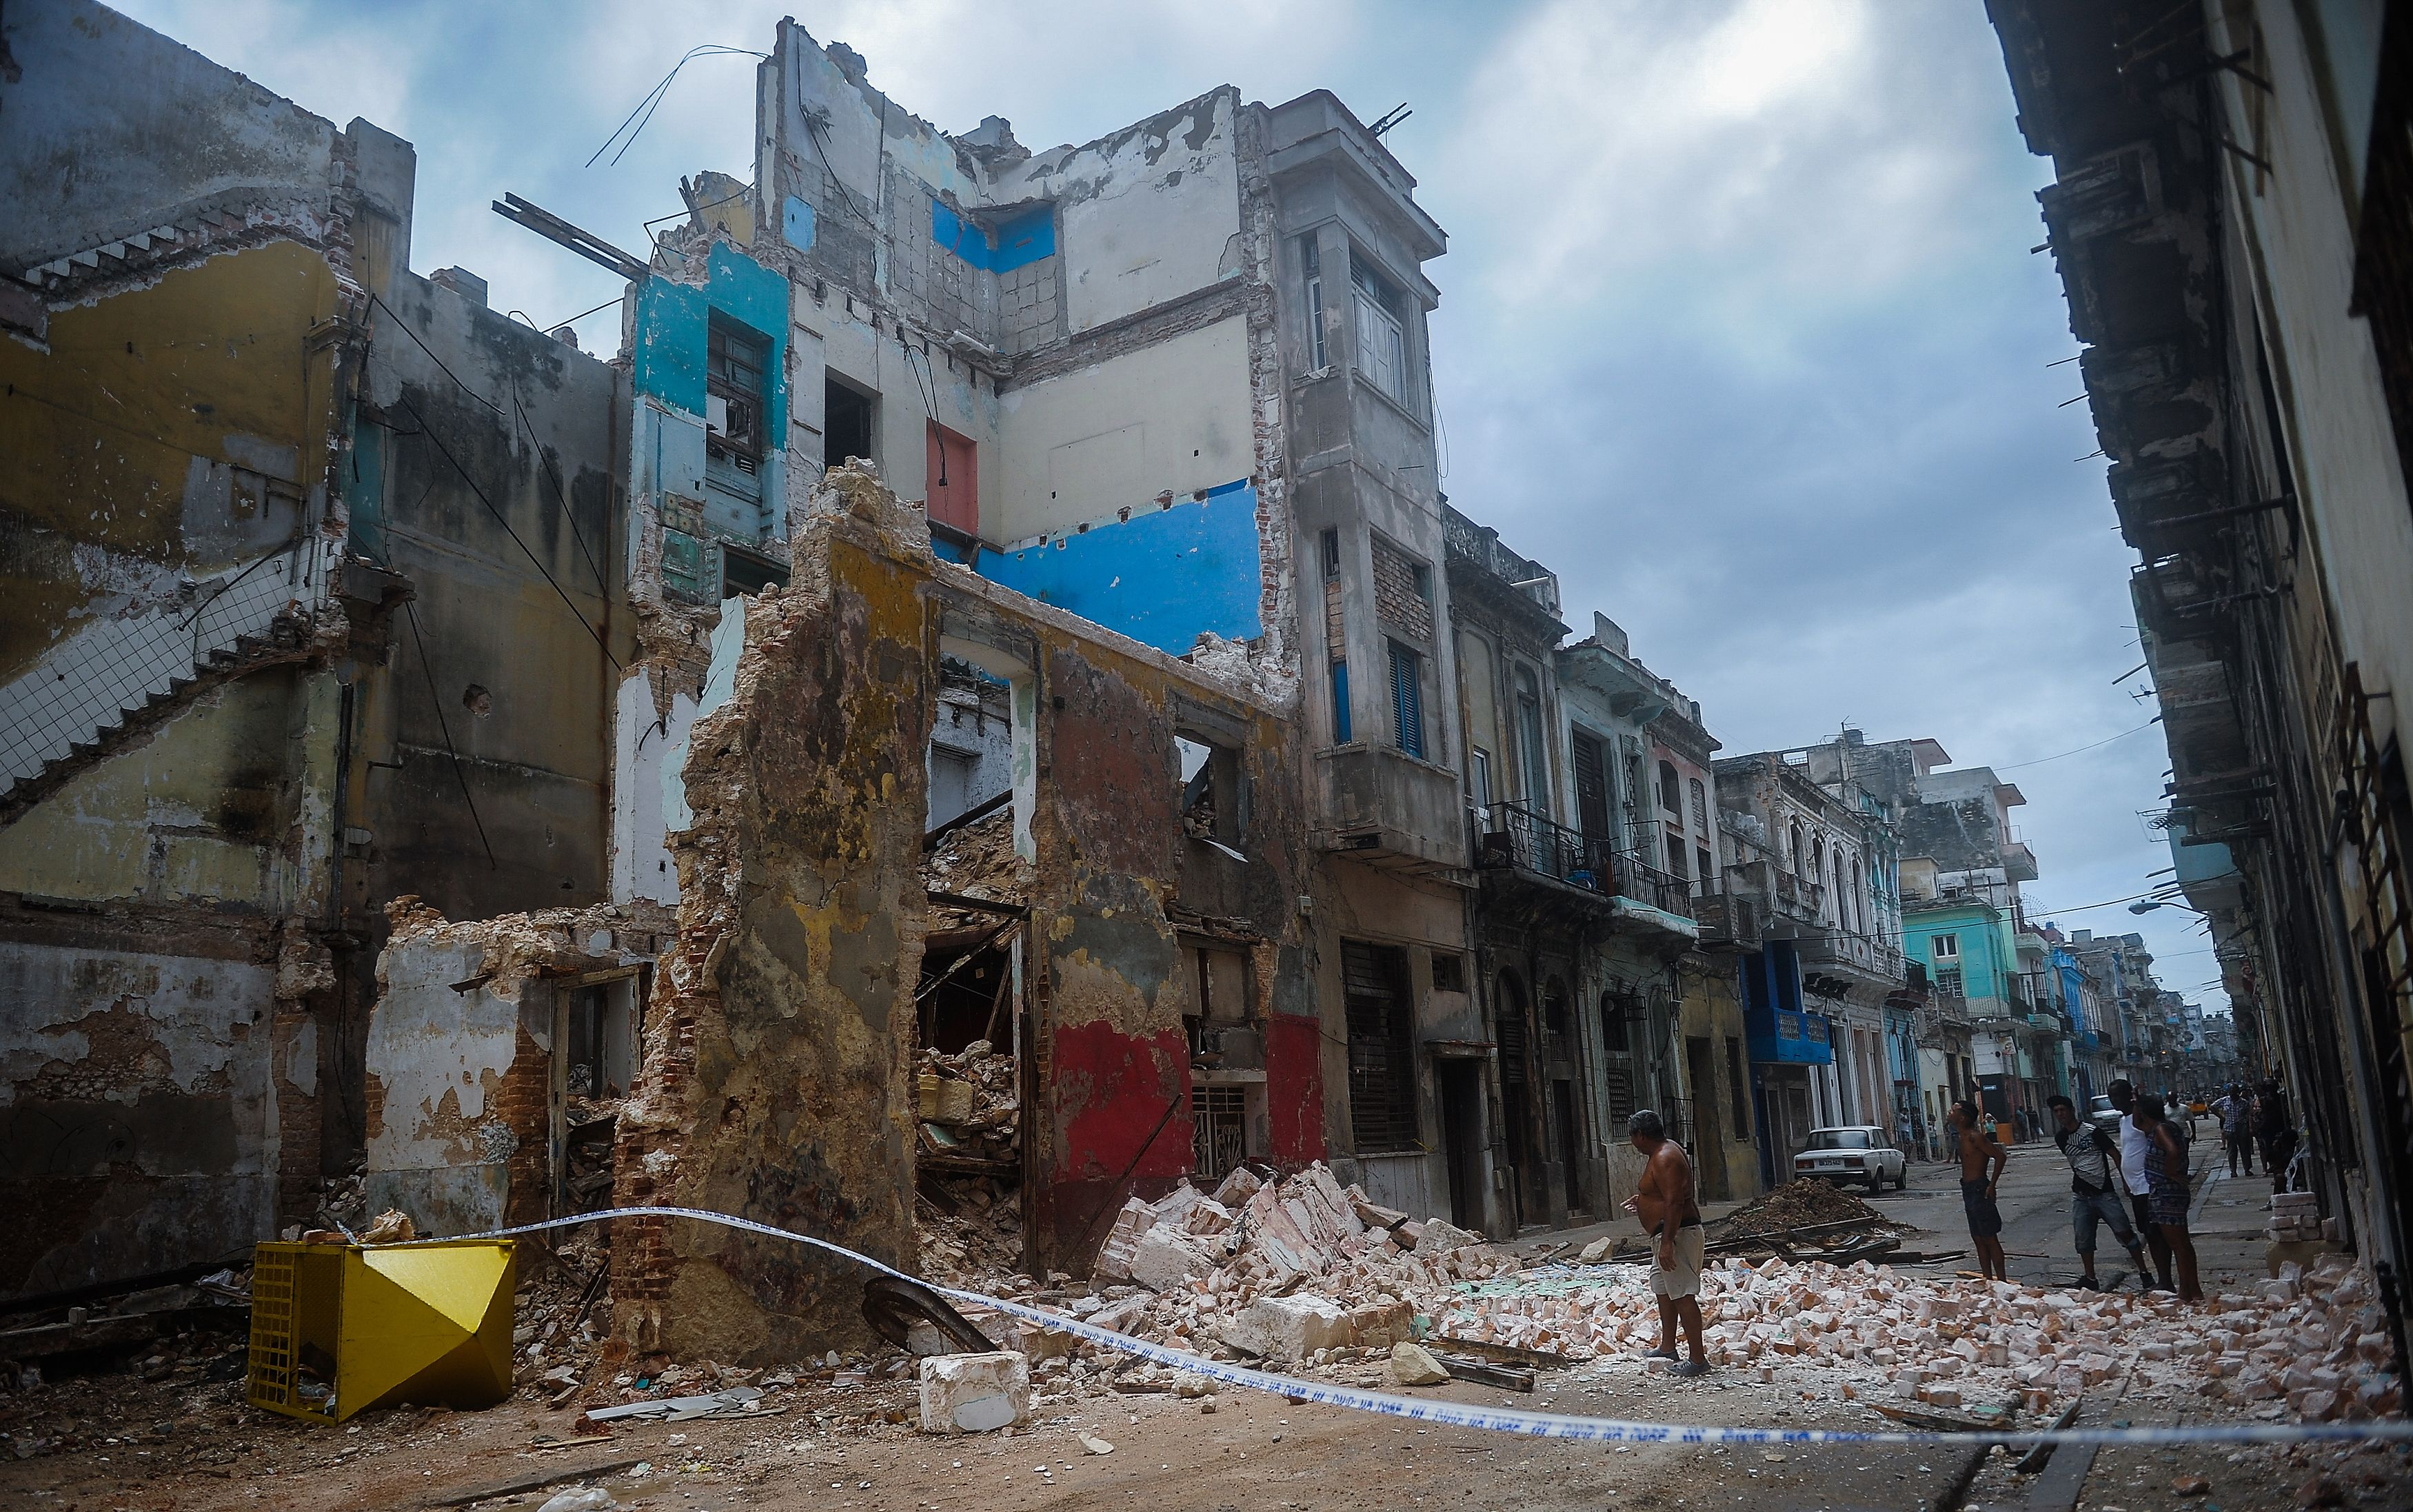 TOPSHOT - Cubans stand bt a collapsed building in Havana, on September 9, 2017.  Irma's blast through the Cuban coastline weakened the storm to a Category Three, but it is still packing 125 mile-an-hour winds (205 kilometer per hour) and was expected to regain power before hitting the Florida Keys early Sunday, US forecasters said. The Cuban government extended its maximum state of alert to three additional provinces, including Havana, amid fears of flooding in low-lying areas. / AFP / YAMIL LAGE